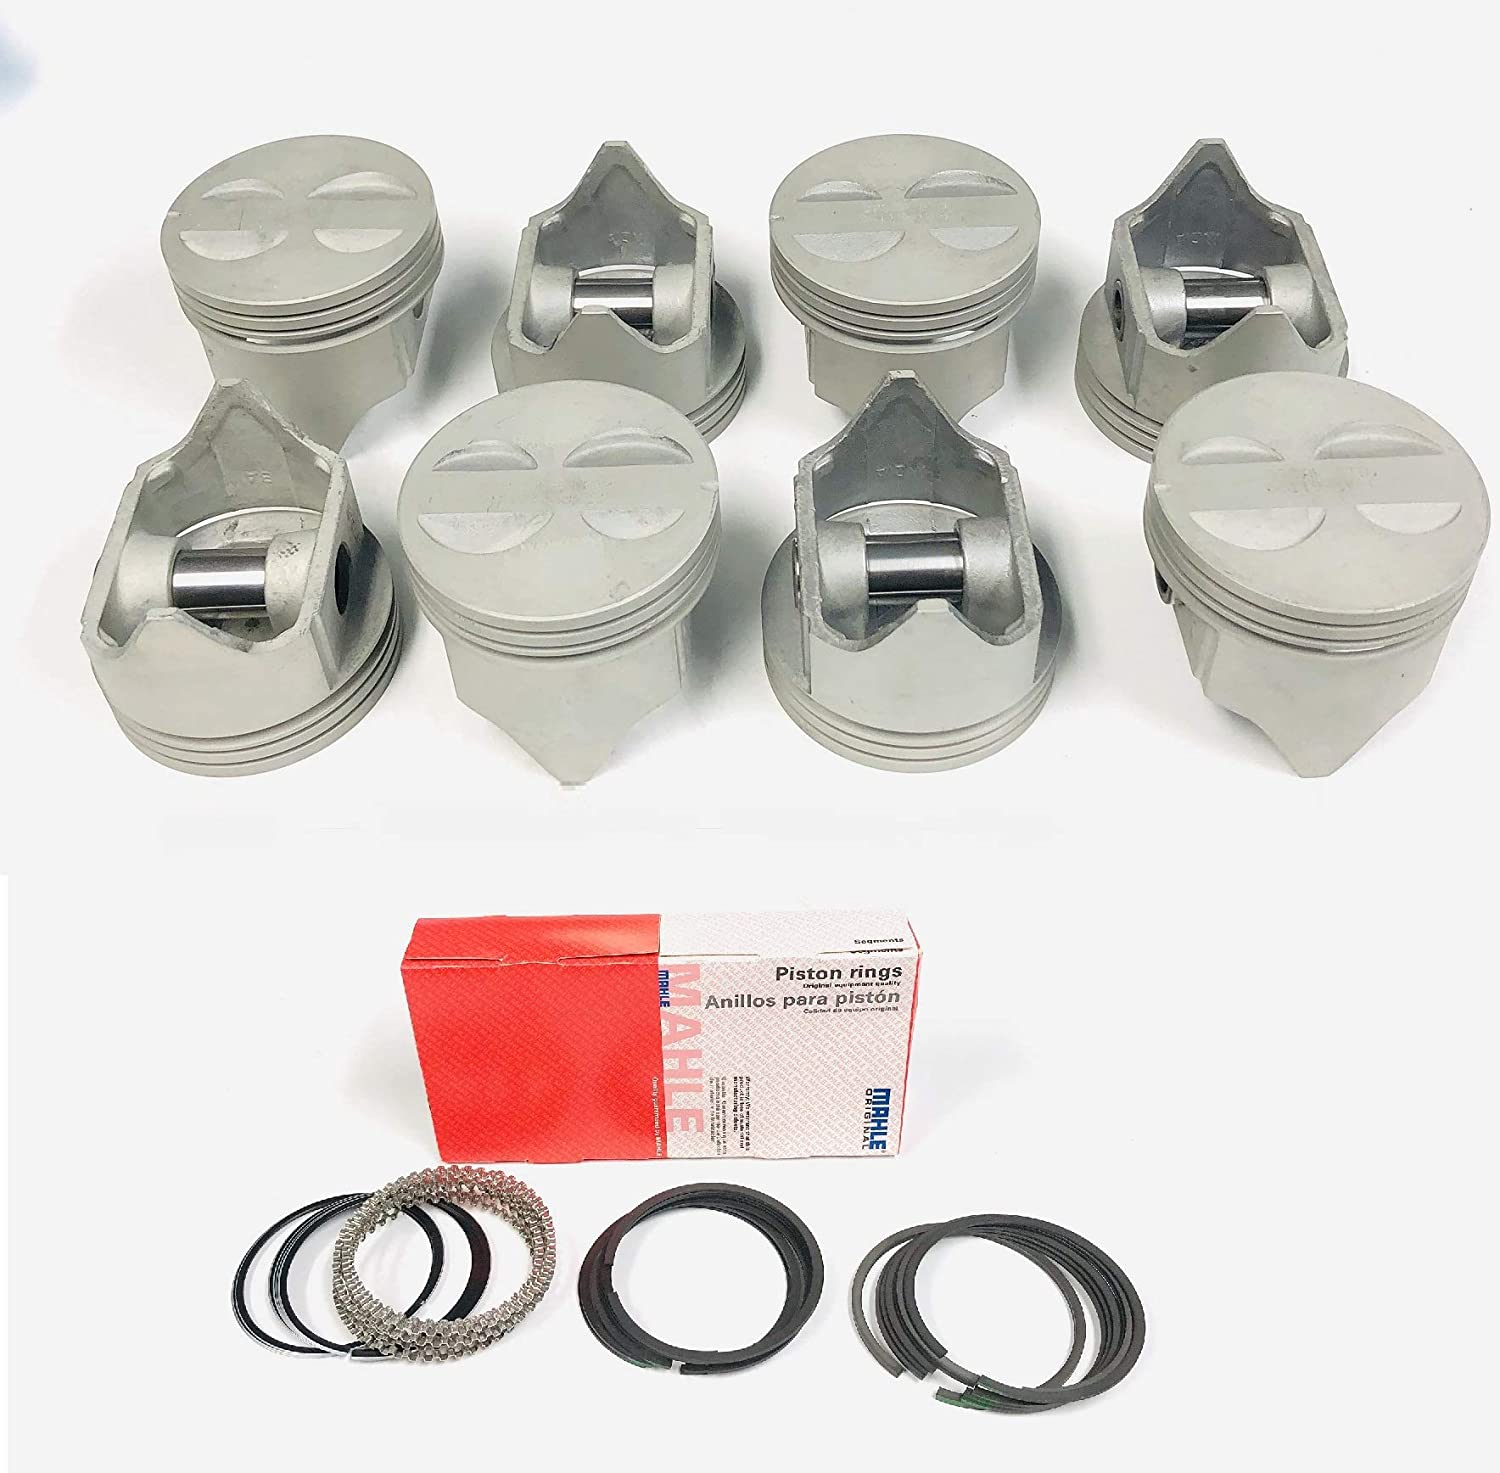 4.060 Bore Sealed Power Cast Flat Top 4VR Pistons /& Rings Kit compatible with Ford 289 302 5.0 5.0L 1968-86.